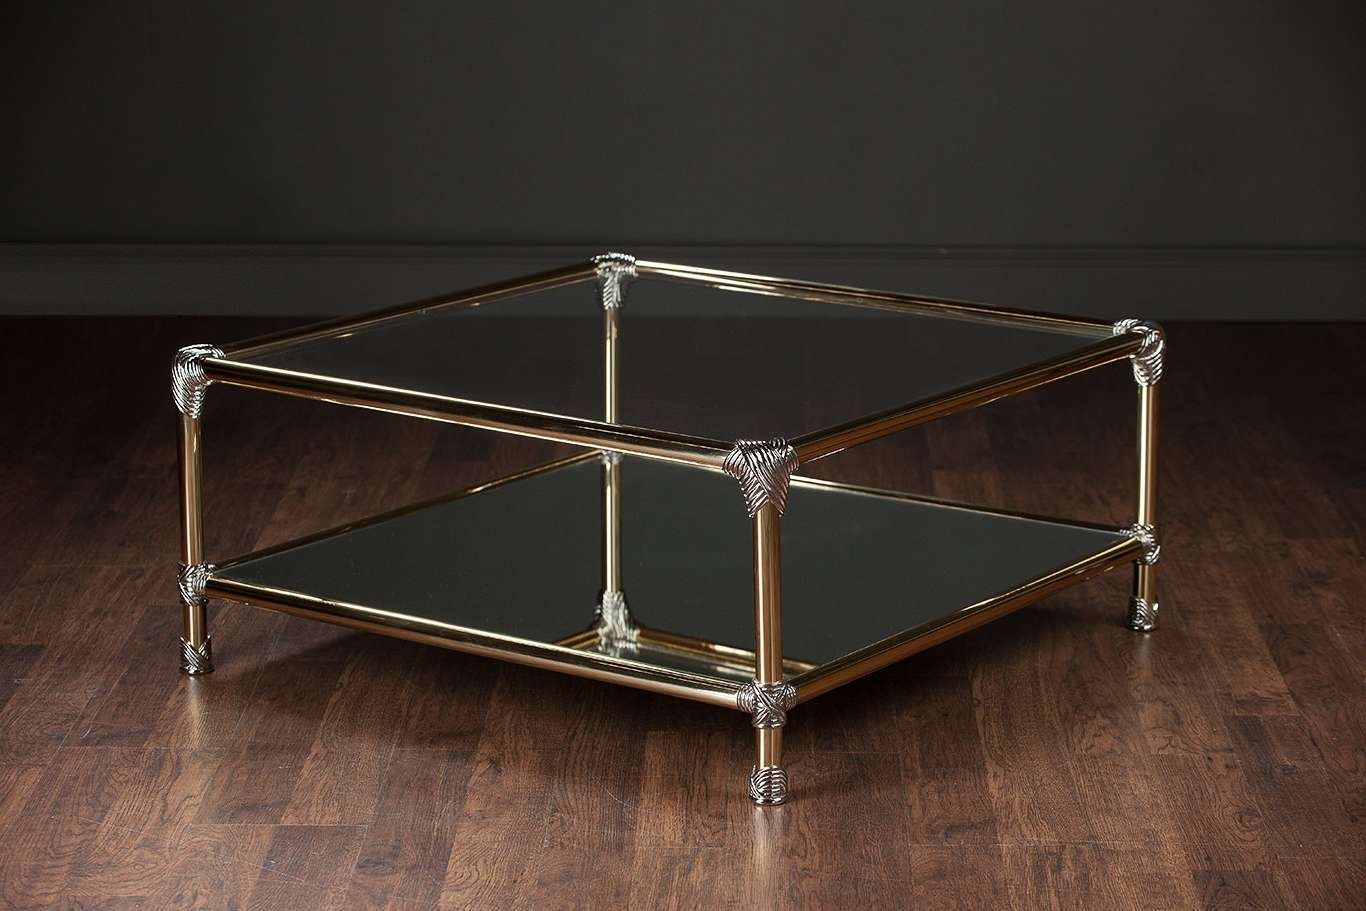 Vintage Brass And Chrome Coffee Table – Mecox Gardens Regarding Most Popular Vintage Glass Coffee Tables (Gallery 11 of 20)